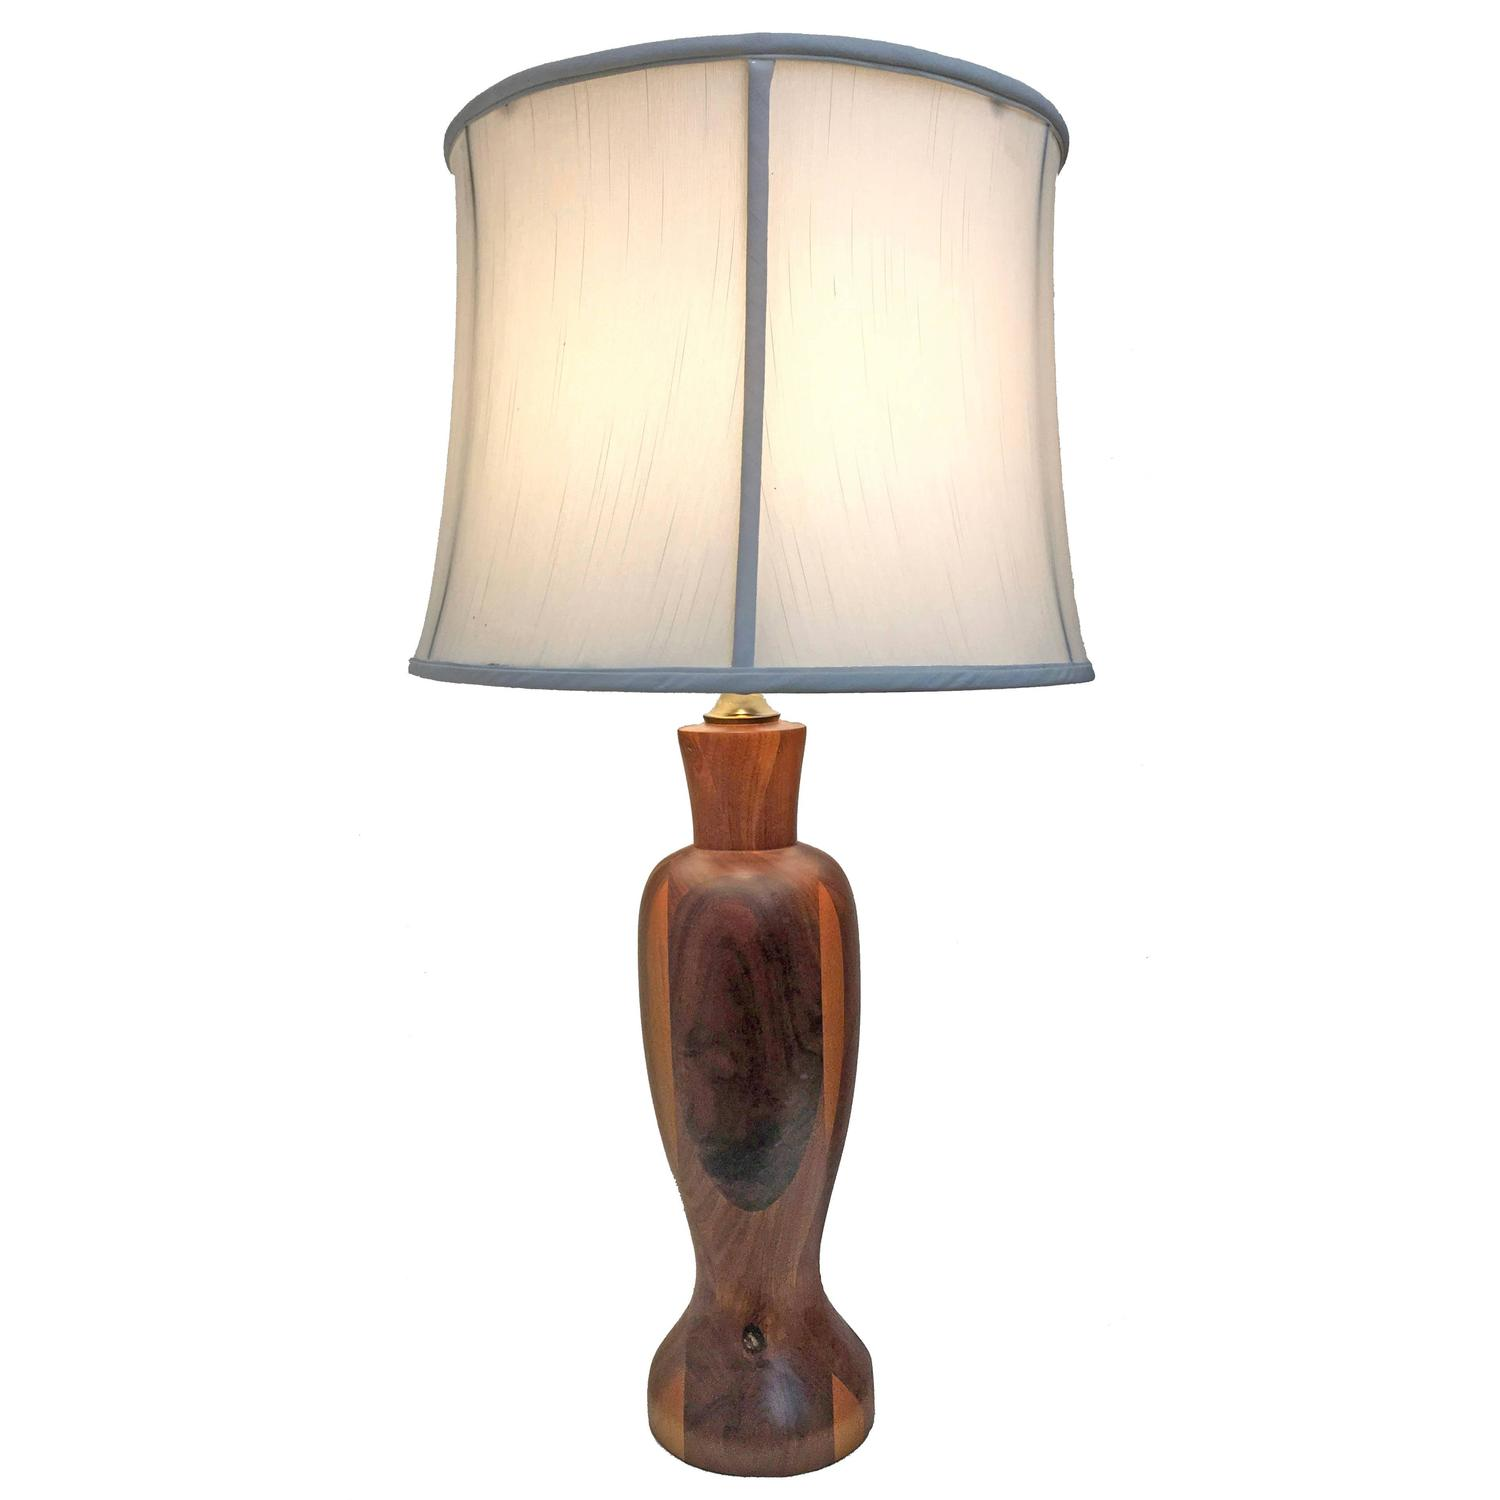 walnut and mixed wood custom made table lamp for sale at 1stdibs. Black Bedroom Furniture Sets. Home Design Ideas